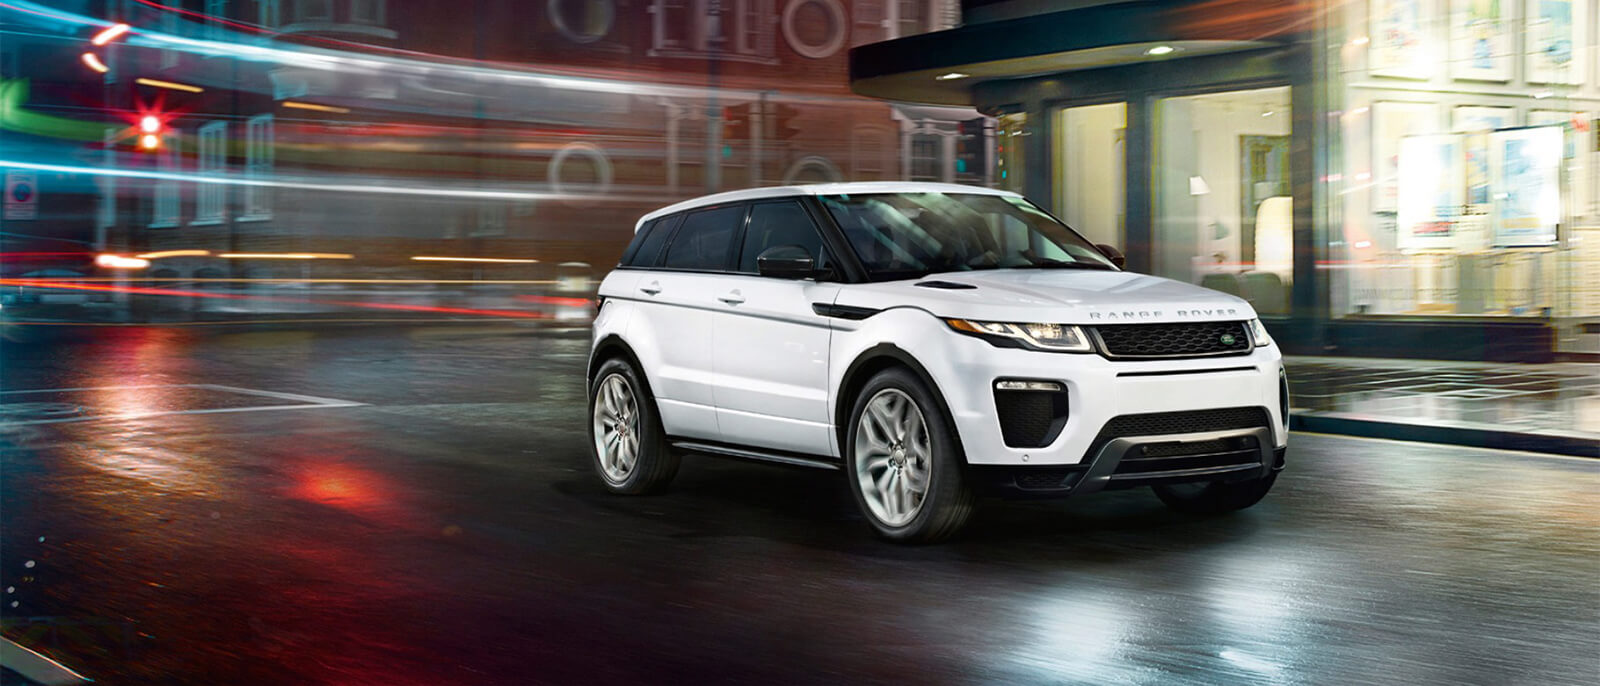 2017 Land Rover Evoque Stuns Wayne And Melbourne Pa Drivers